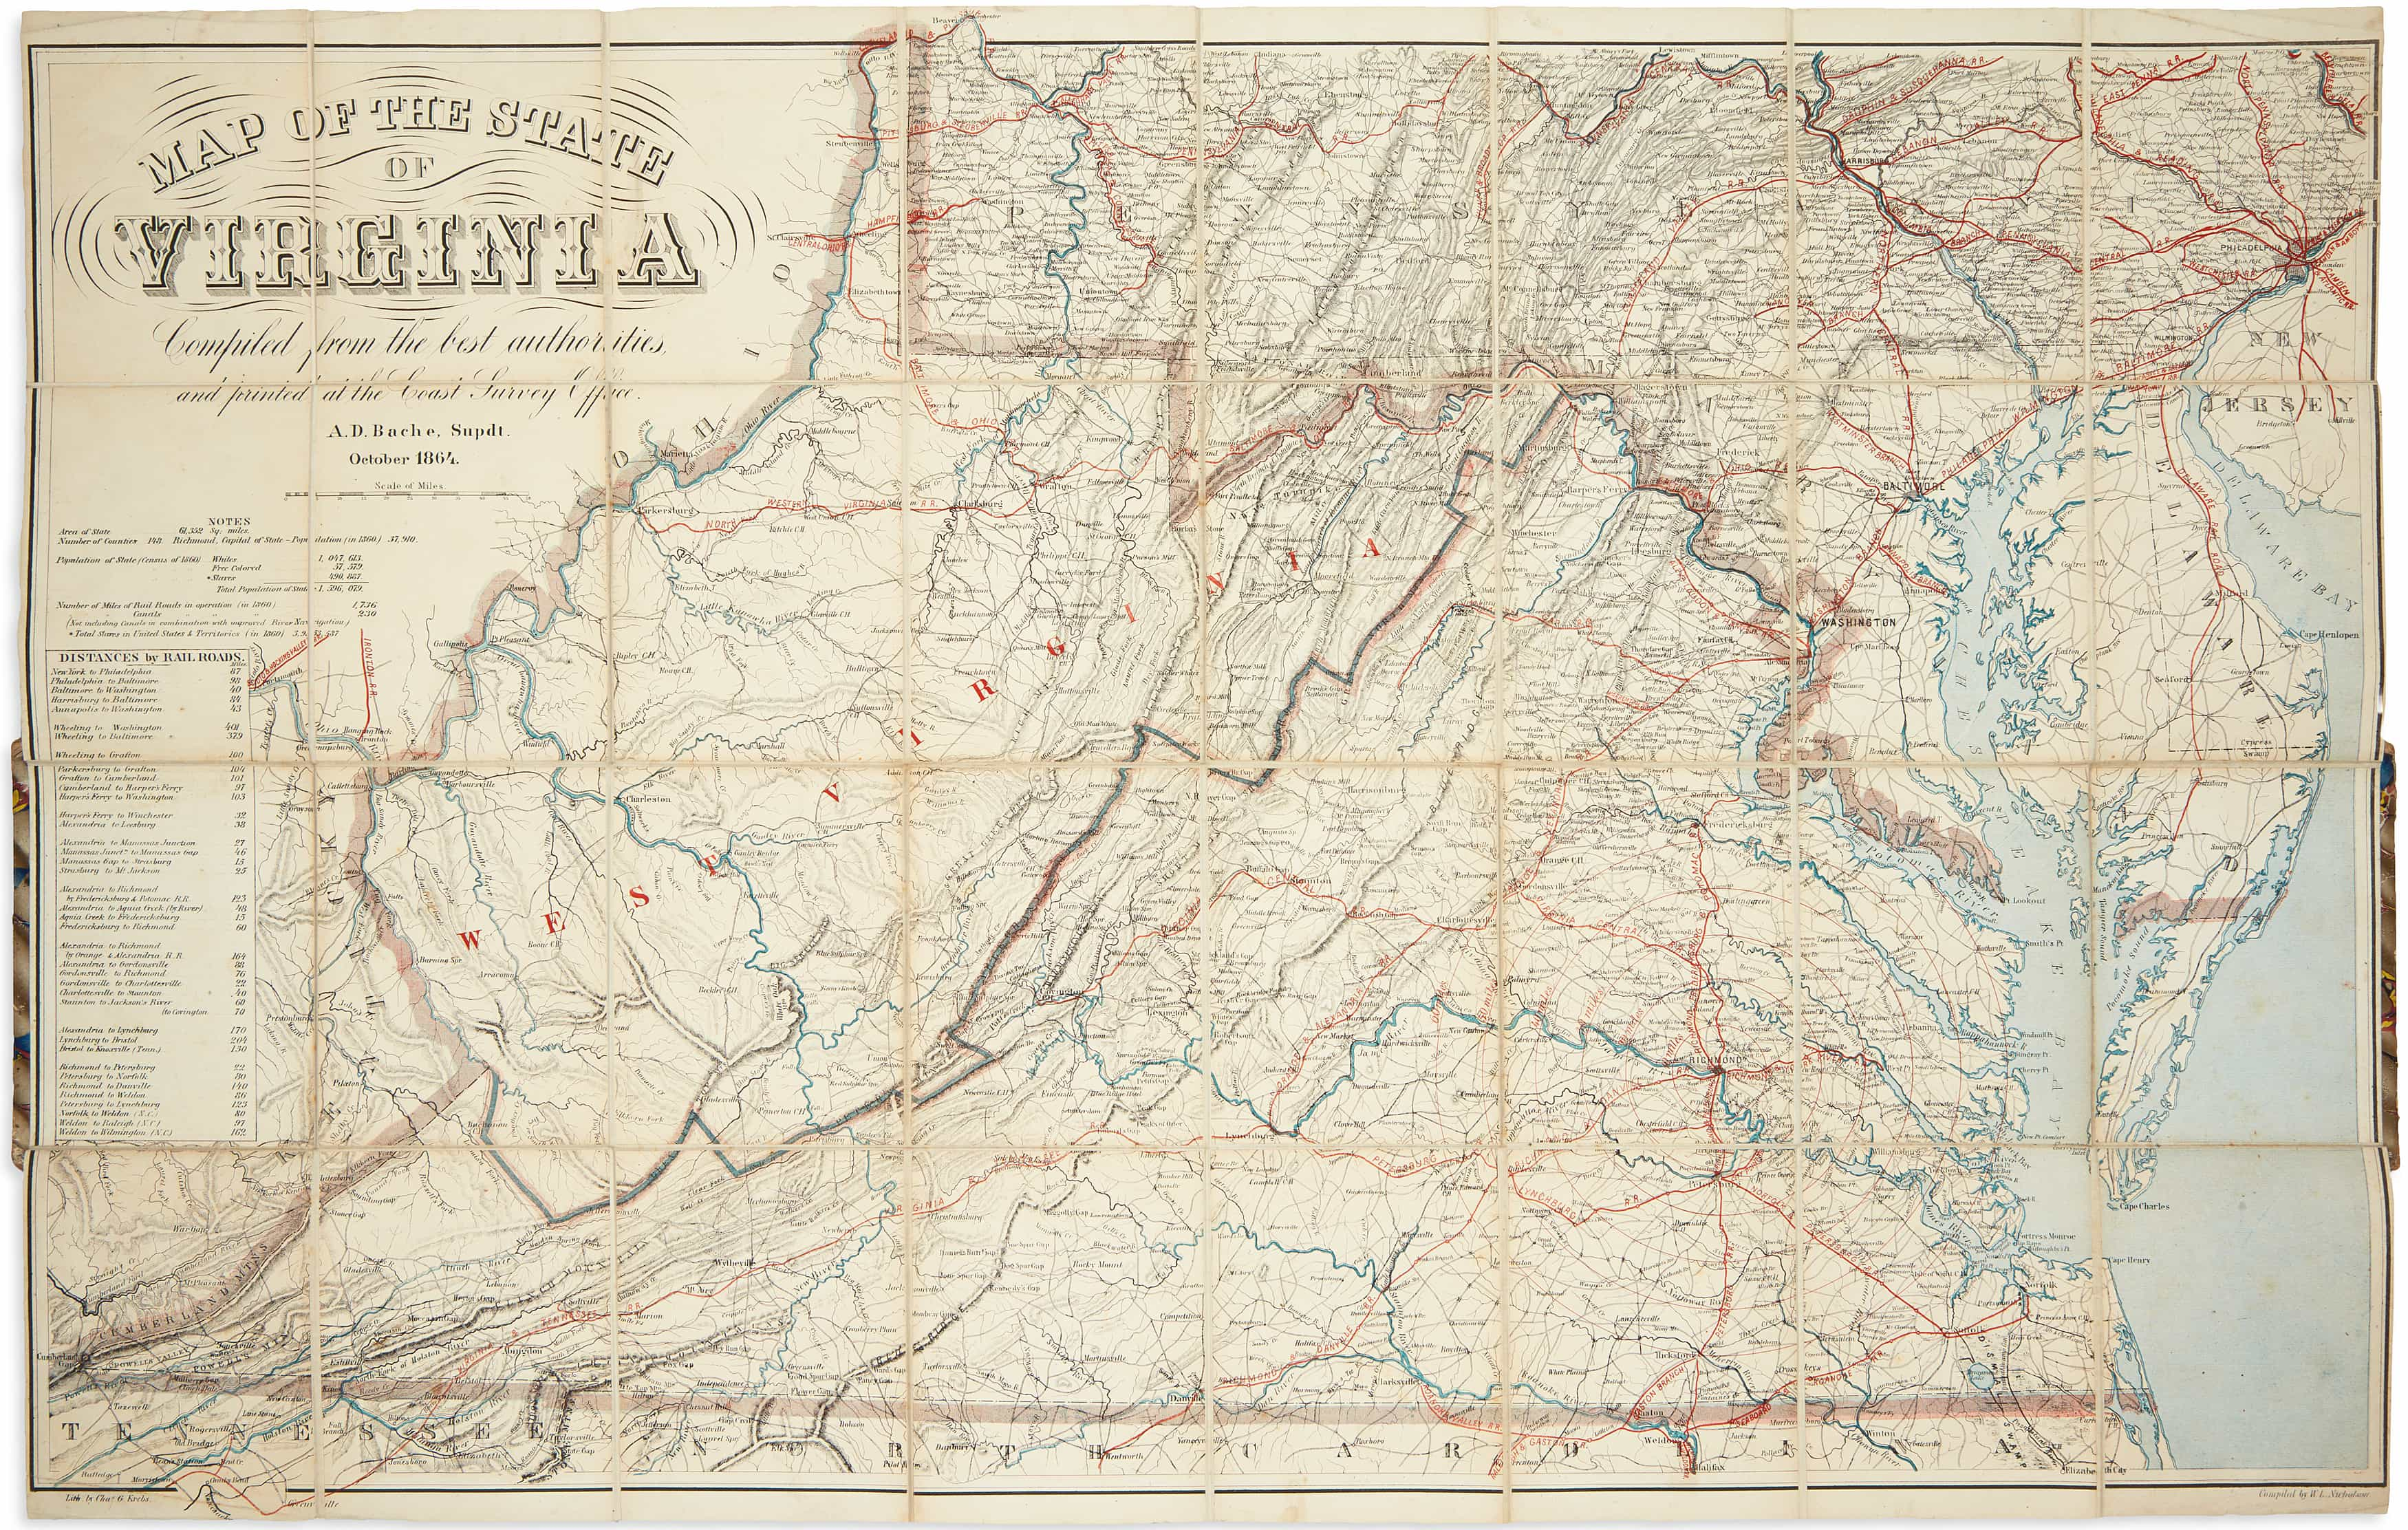 Exceptional Civil War Map Of Virginia And West Virginia